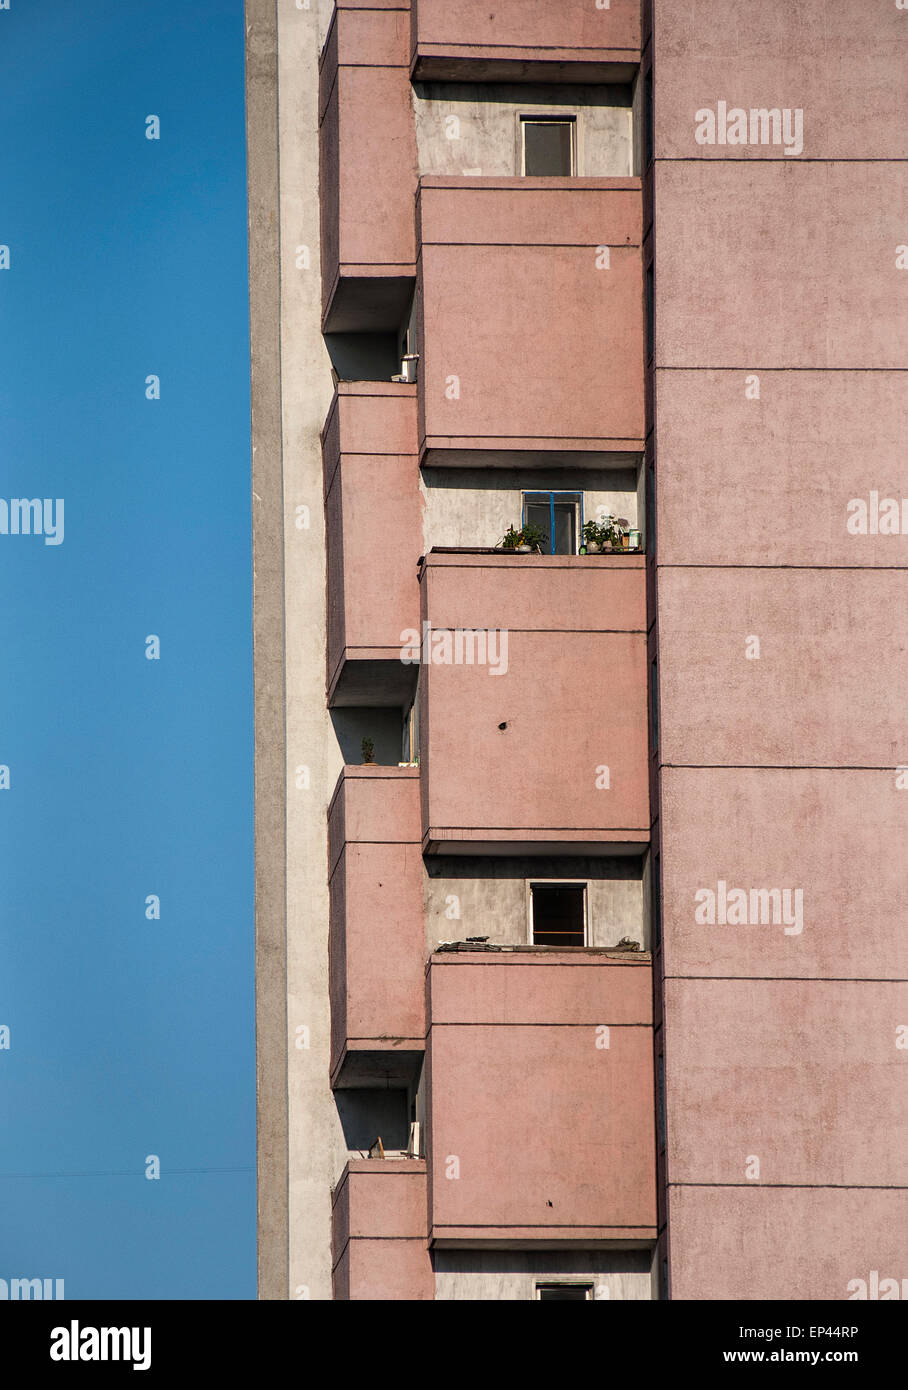 Residental building in Pyongyang, North Korea, DPRK - Stock Image